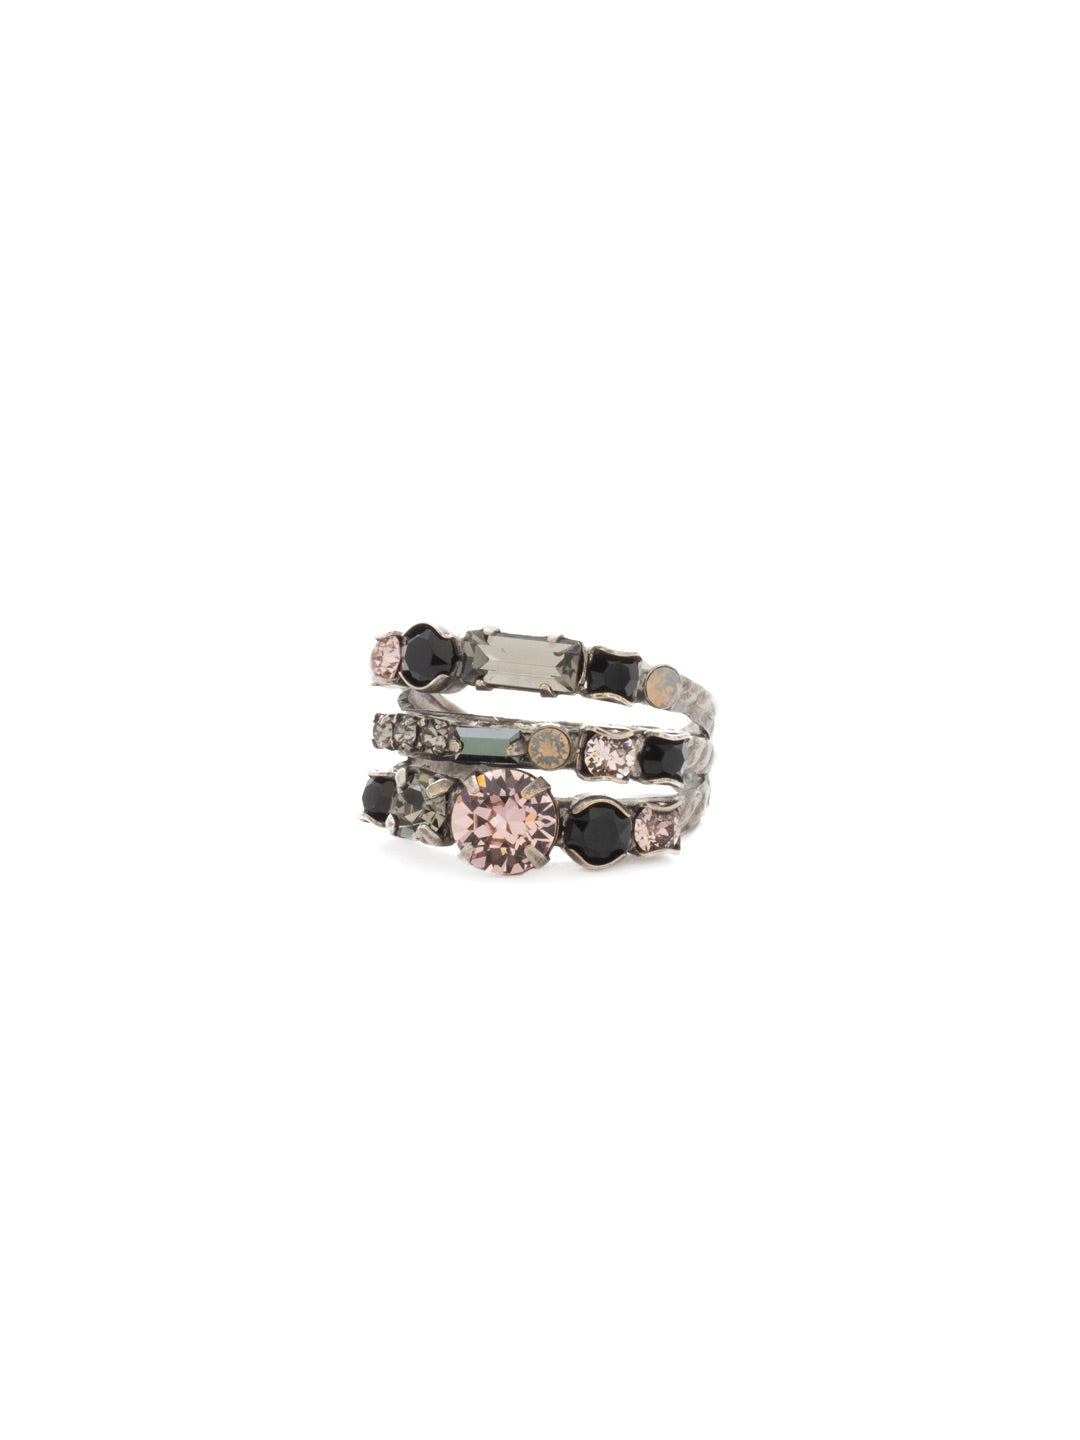 Triple Threat Stacked Ring - RDK23ASCNO